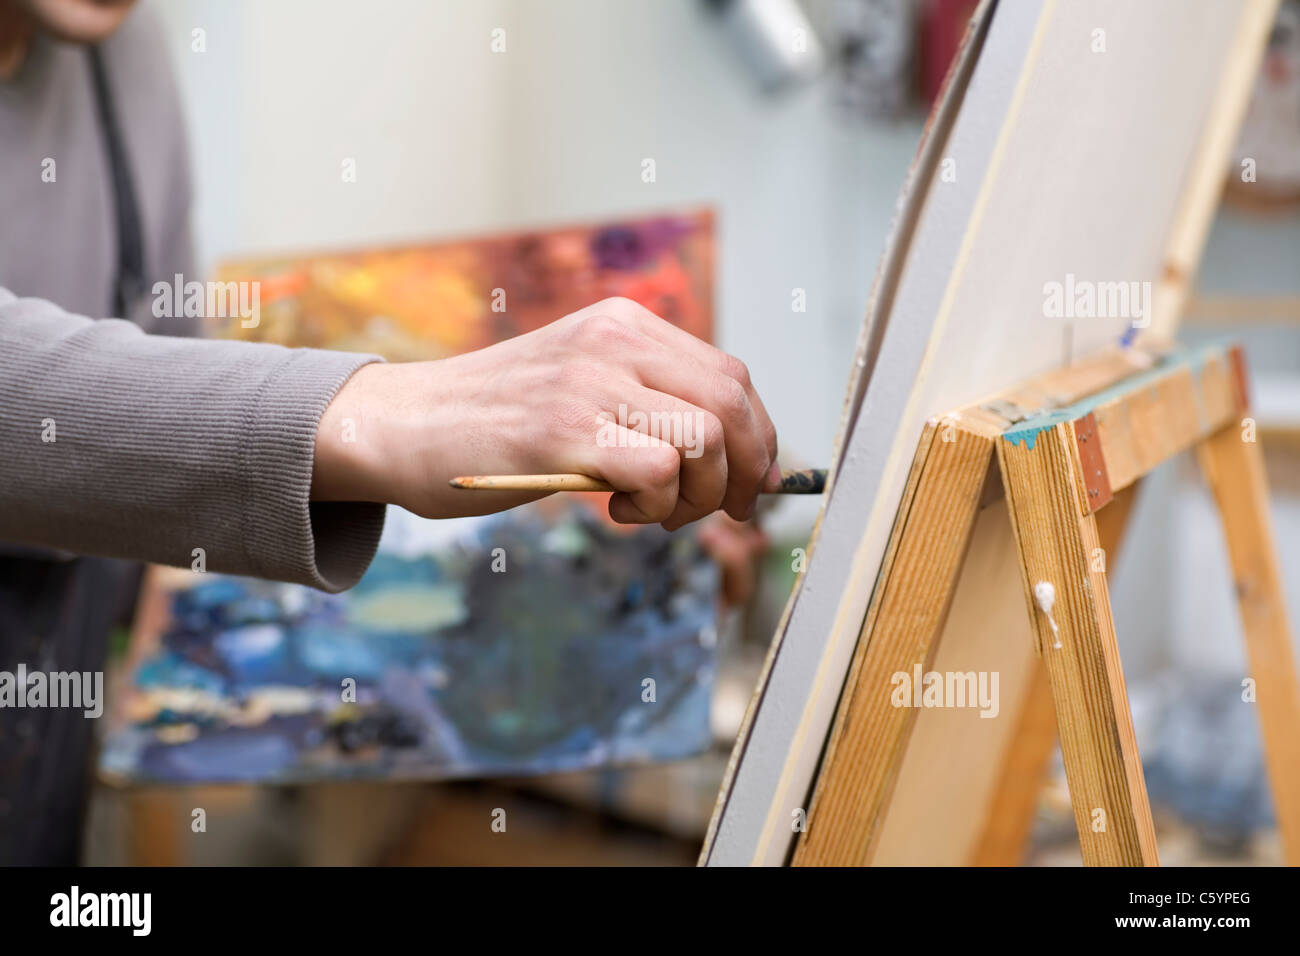 Russia, Voronezh, man painting on canvas - Stock Image